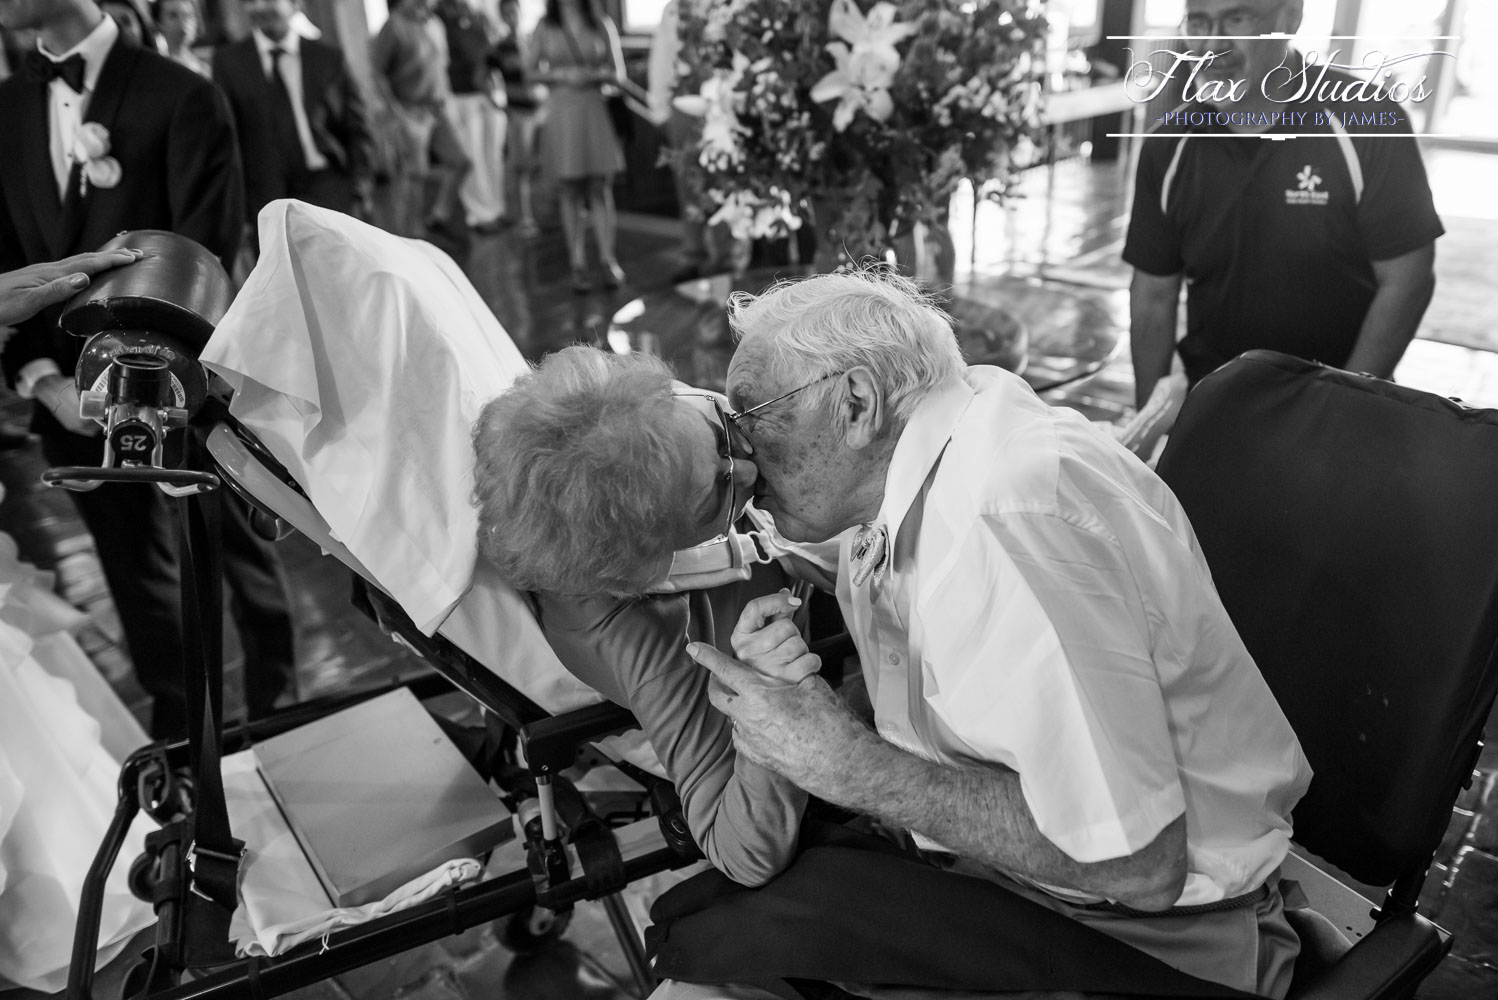 """It's hard to pick a favorite moment from the day, but this was such an emotionally beautiful moment, and probably my favorite! The morning of the wedding, the Grandmother took a terrible fall which resulted in a trip to the hospital. She was, very sadly, not expected to join in on the day's festivities. After the the ceremony though, we arrived back at the samoset where an an ambulance was waiting with grandmother to greet them! This moment brought me to tears as her husband in a wheelchair came to greet his bride on a gurney. It was such a happy moment for her to have made an appearance or as she put it, """"I'm known for making grand entrances, you shouldn't expect anything less"""". That may be a slight paraphrase, but that was the gist of it!"""